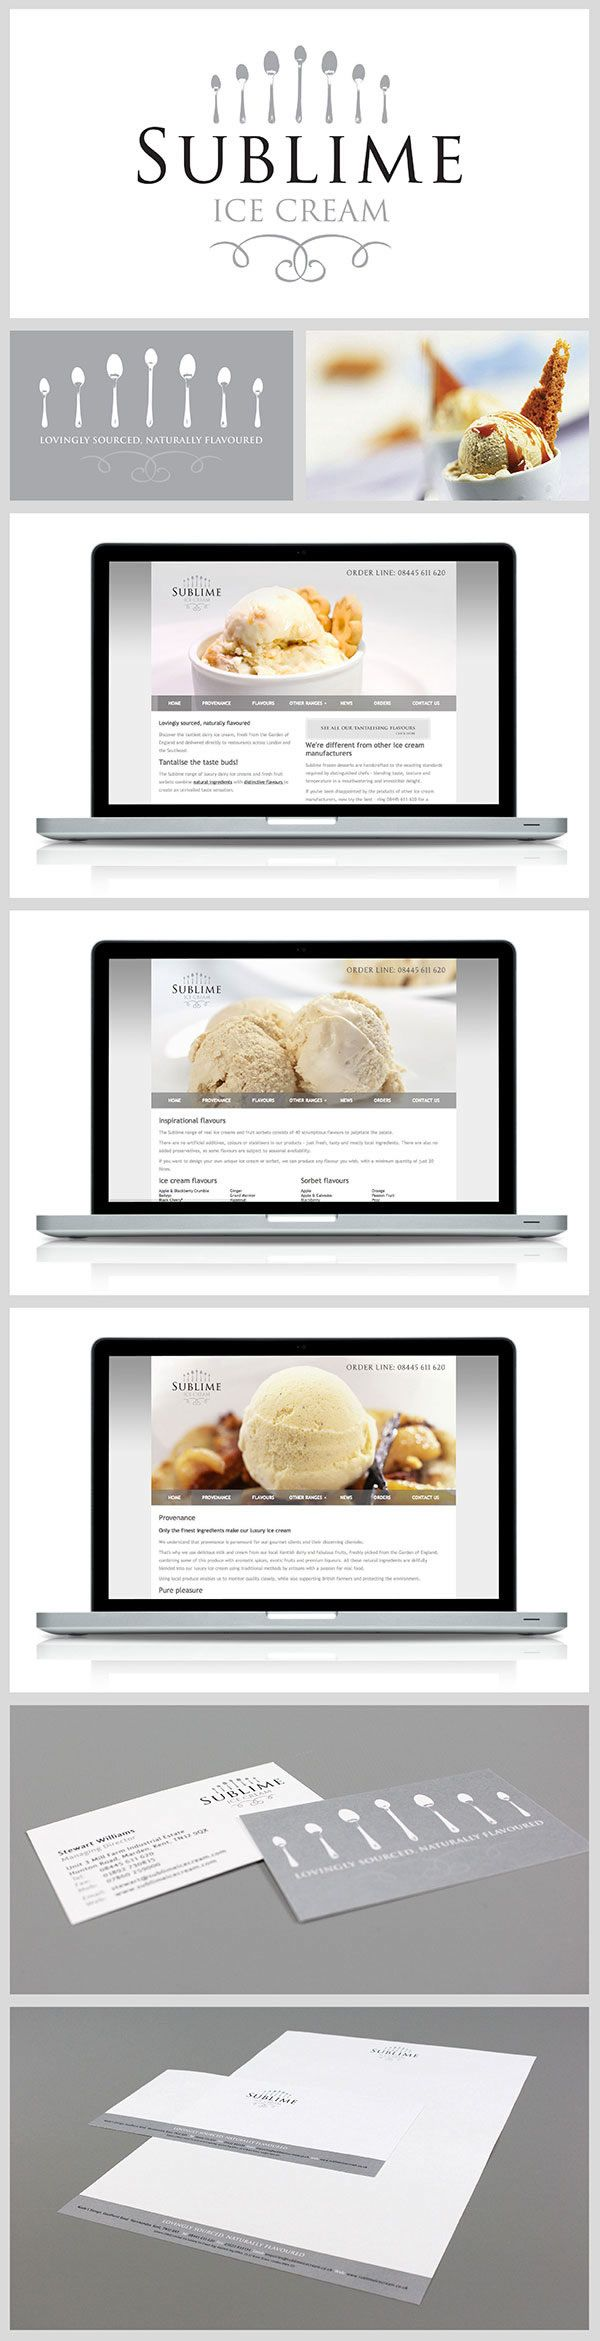 Brand and Website Design for a leading frozen food storage and distribution company, who wanted a Brand for their newly developed parallel business, supplying luxury ice cream